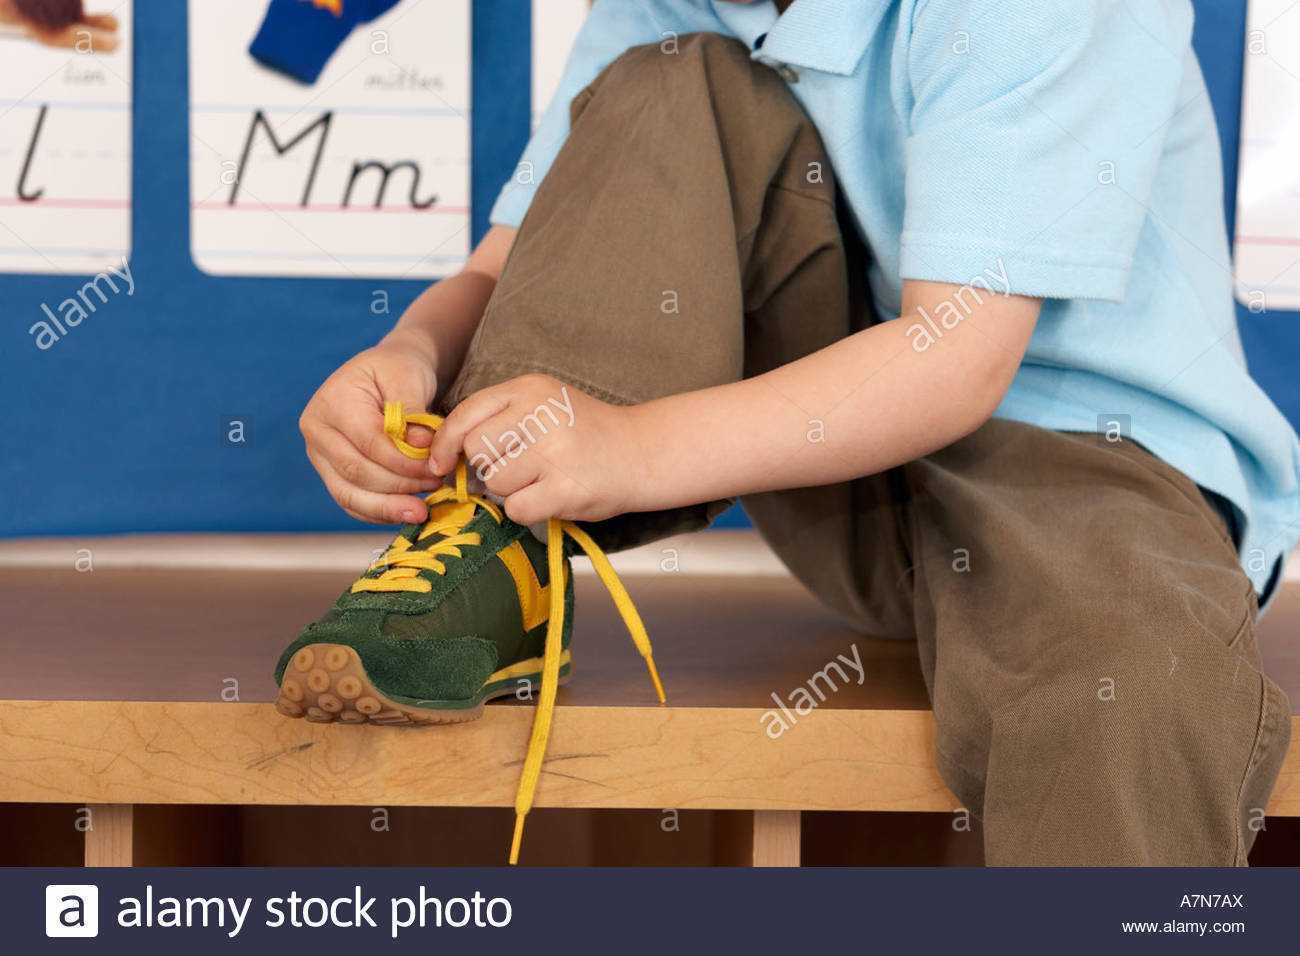 Boy 46 assis sur un banc en bas lacet jaune de liage en classe section cartes alphabet on wall Photo Stock